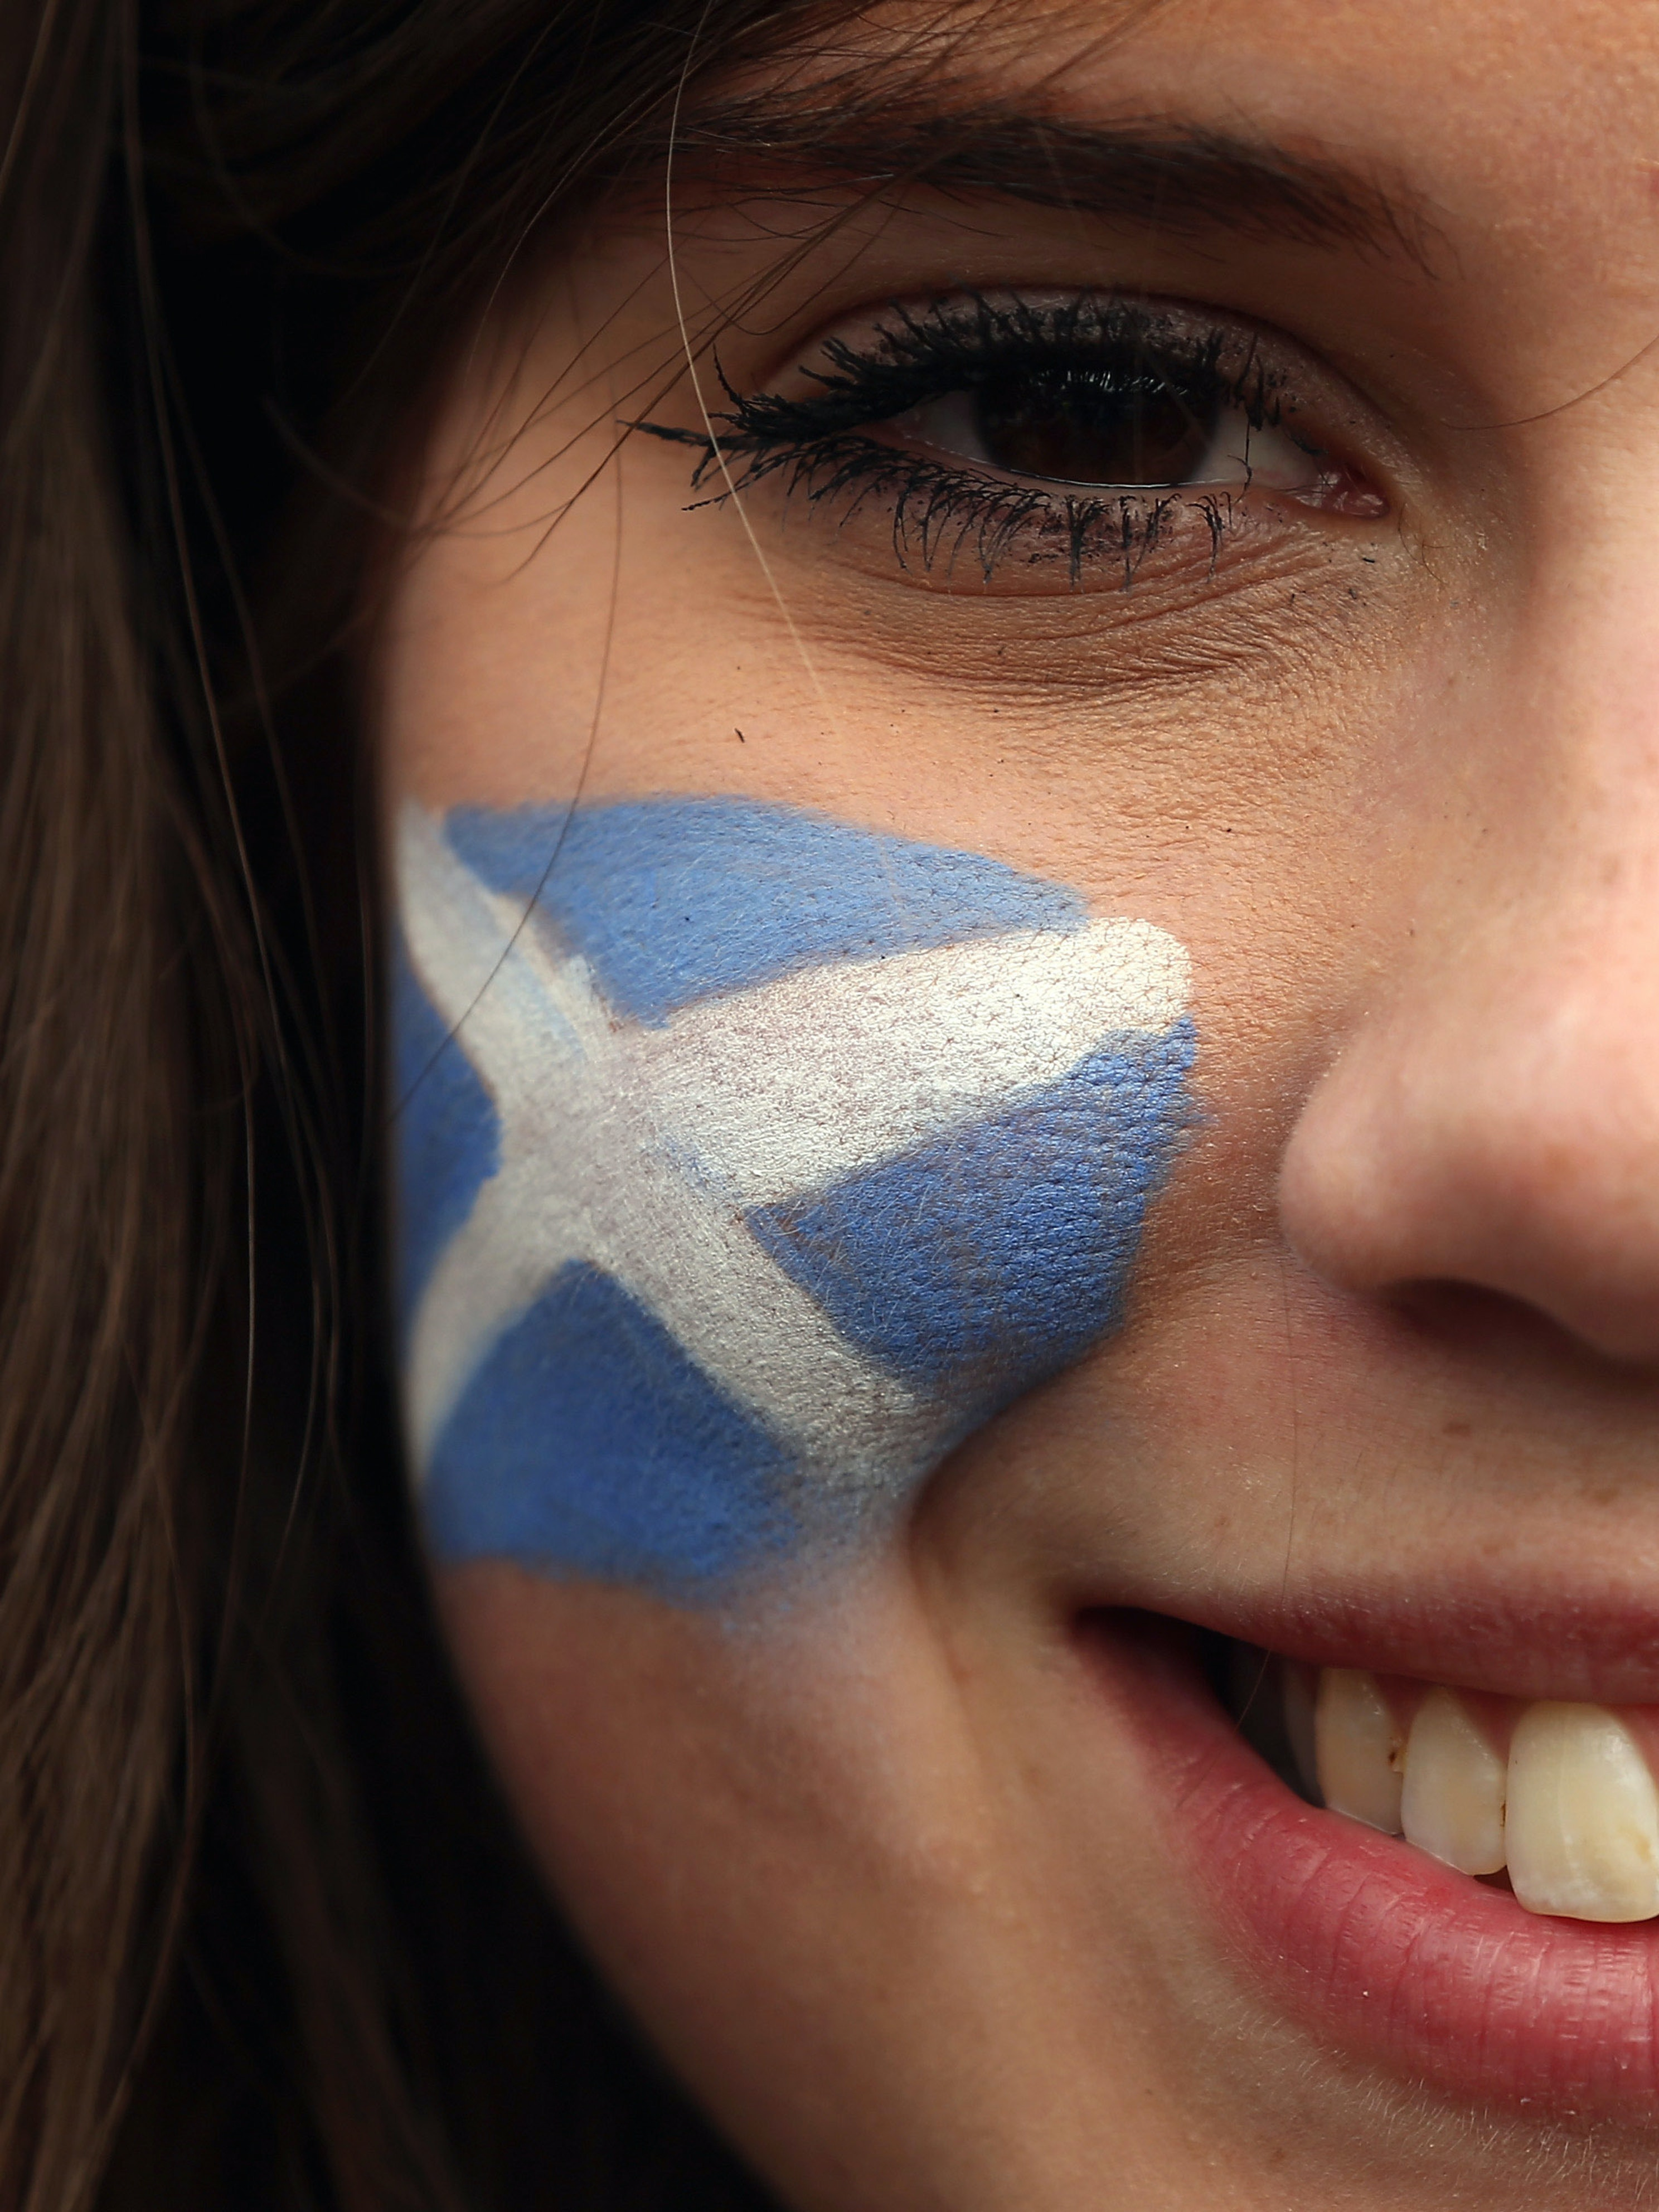 LONDON, ENGLAND - AUGUST 14:  A fan with the Scotland flag face-painted on her cheeks smiles as she arrives at Wembley Stadium ahead of a friendly match between England and Scotland on August 14, 2013 in London, England. Scotland and England will meet at Wembley stadium tonight for their first international in 14 years.  (Photo by Dan Kitwood/Getty Images)